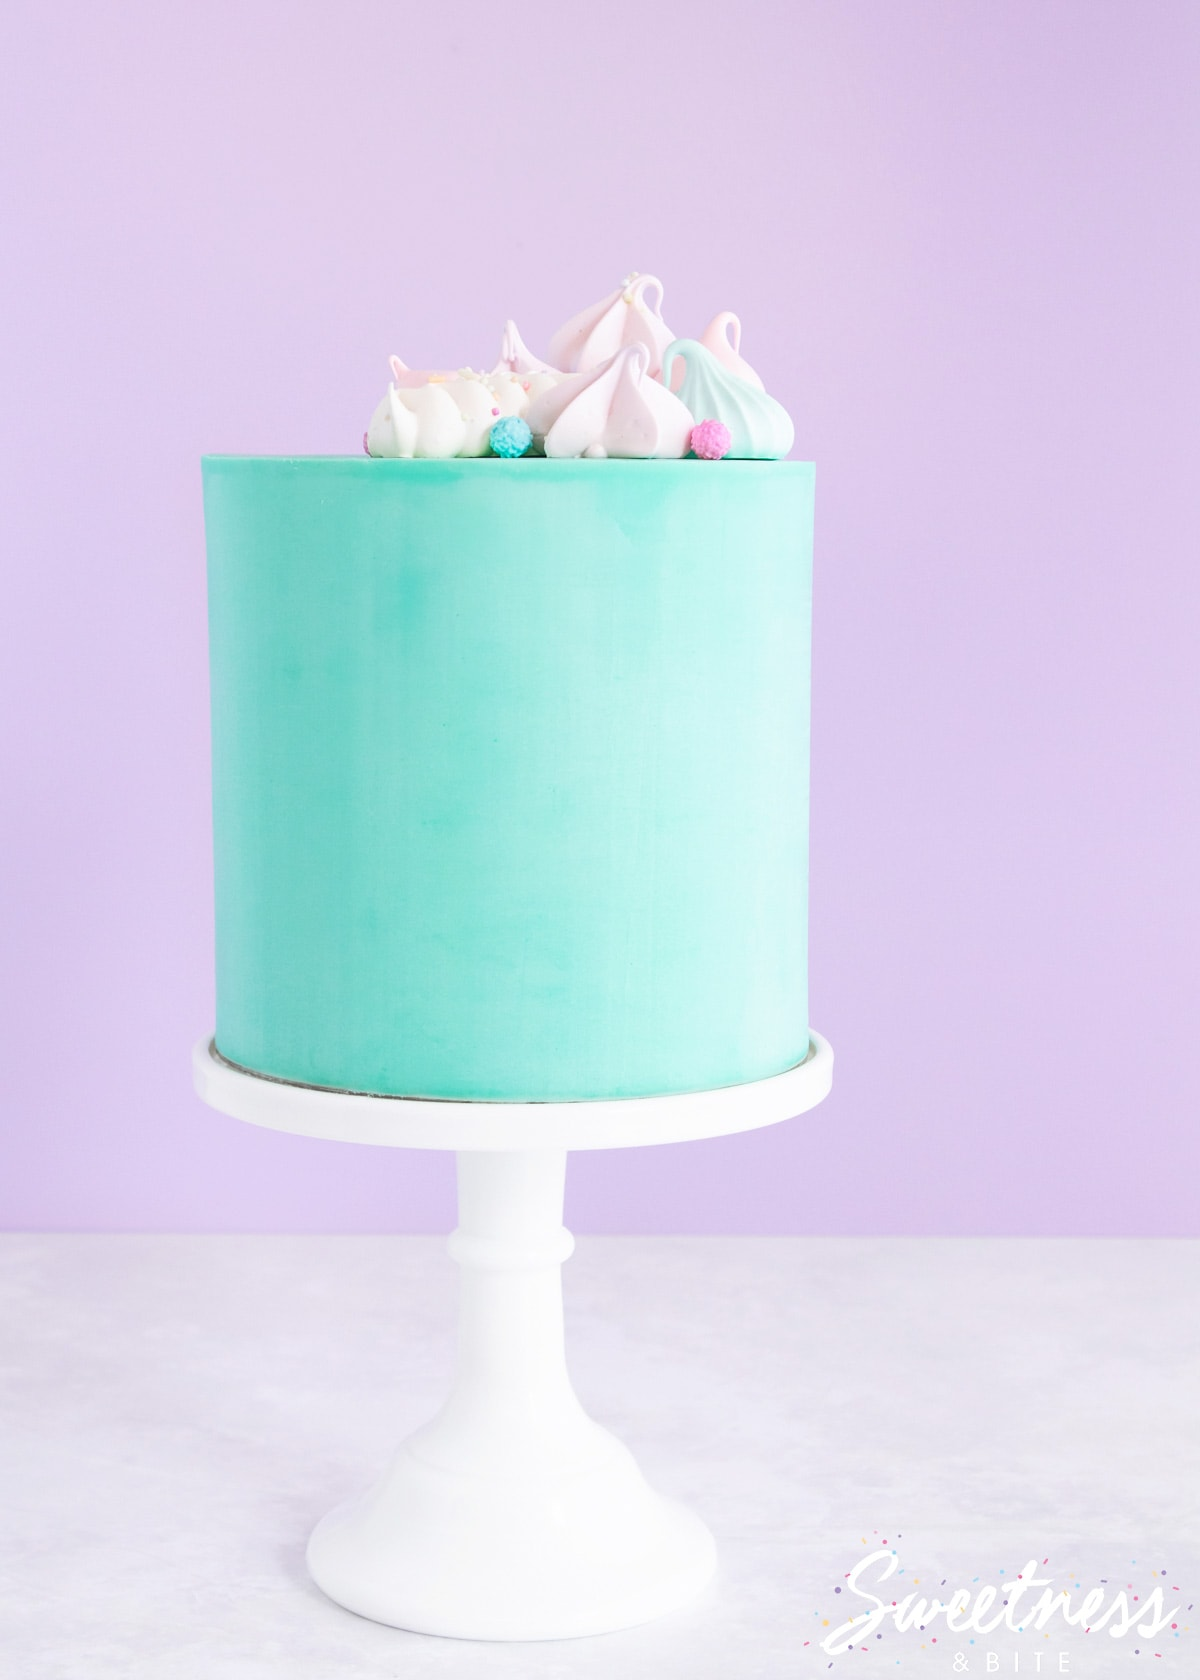 A cake covered in teal ganache on a white cake stand, topped with pastel coloured meringues.